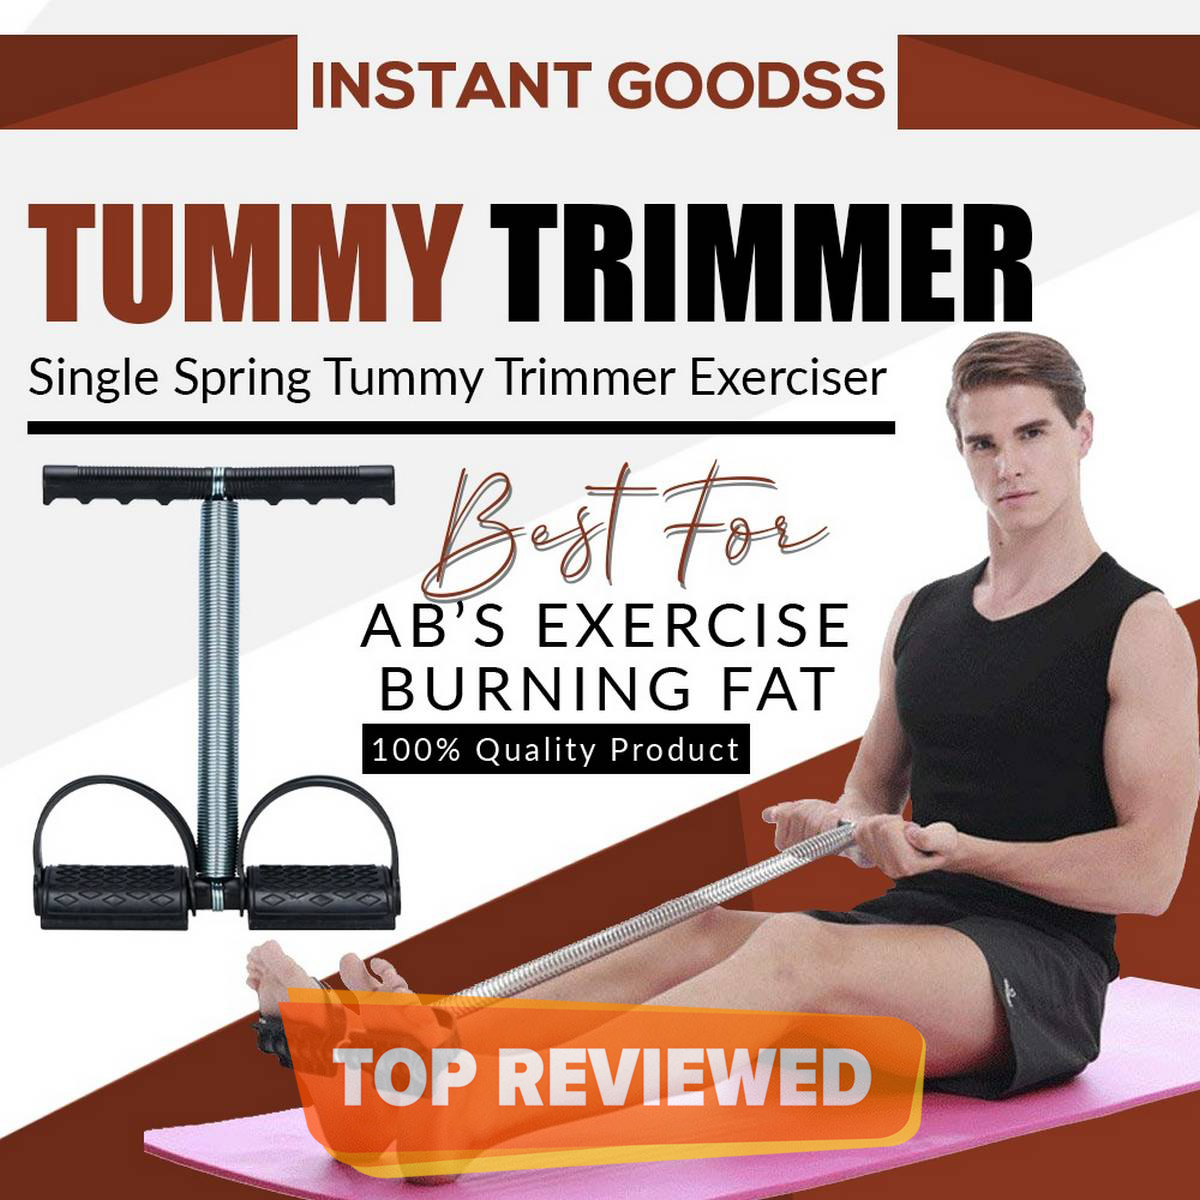 Tummy trimmer high quality in single spring and double spring for home gym